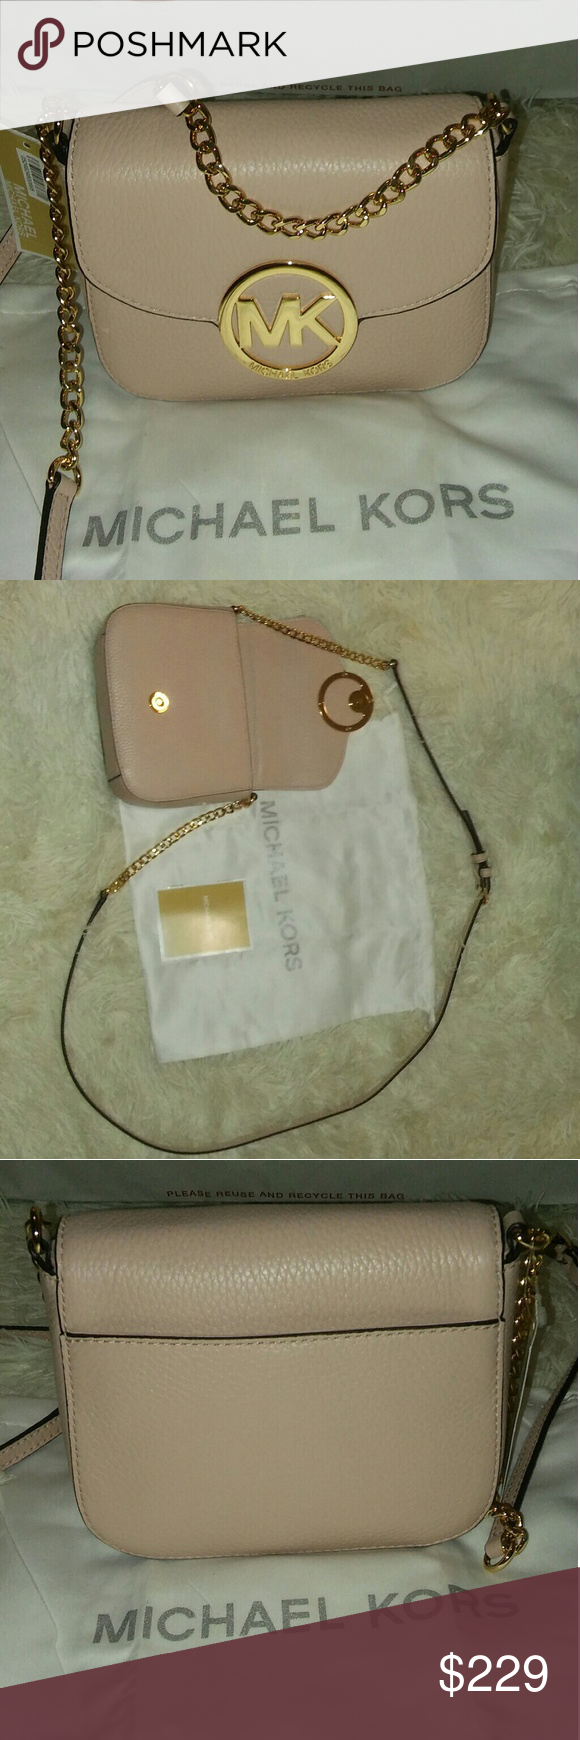 caca7ad548ad Authentic Michael Kors Fulton Crossbody Baby Pink Fulton MK Chain link  Crossbody. Never worn in